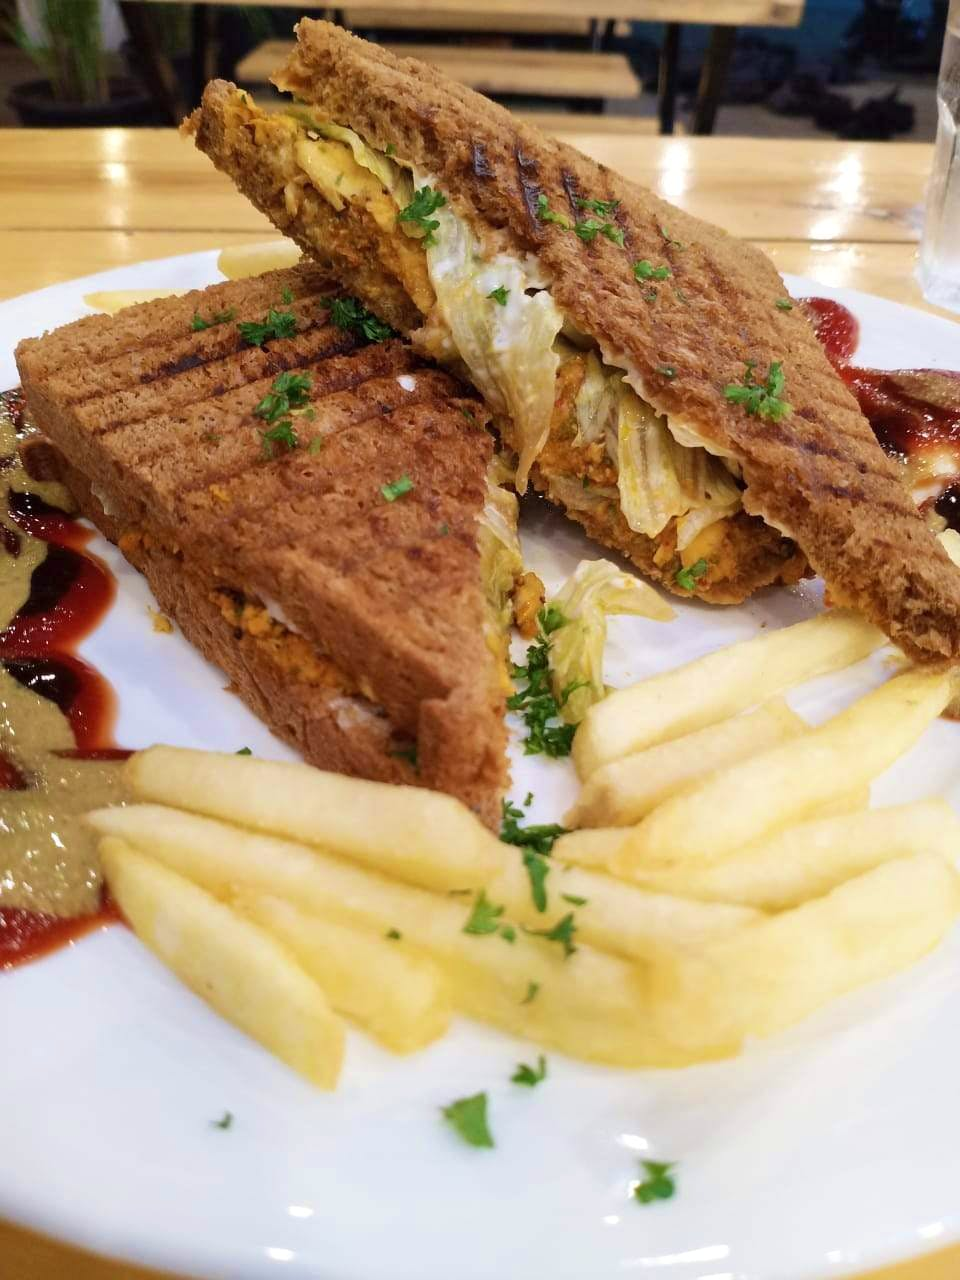 Dish,Food,Cuisine,Ingredient,Produce,Brunch,Patty melt,Meat,Comfort food,Staple food